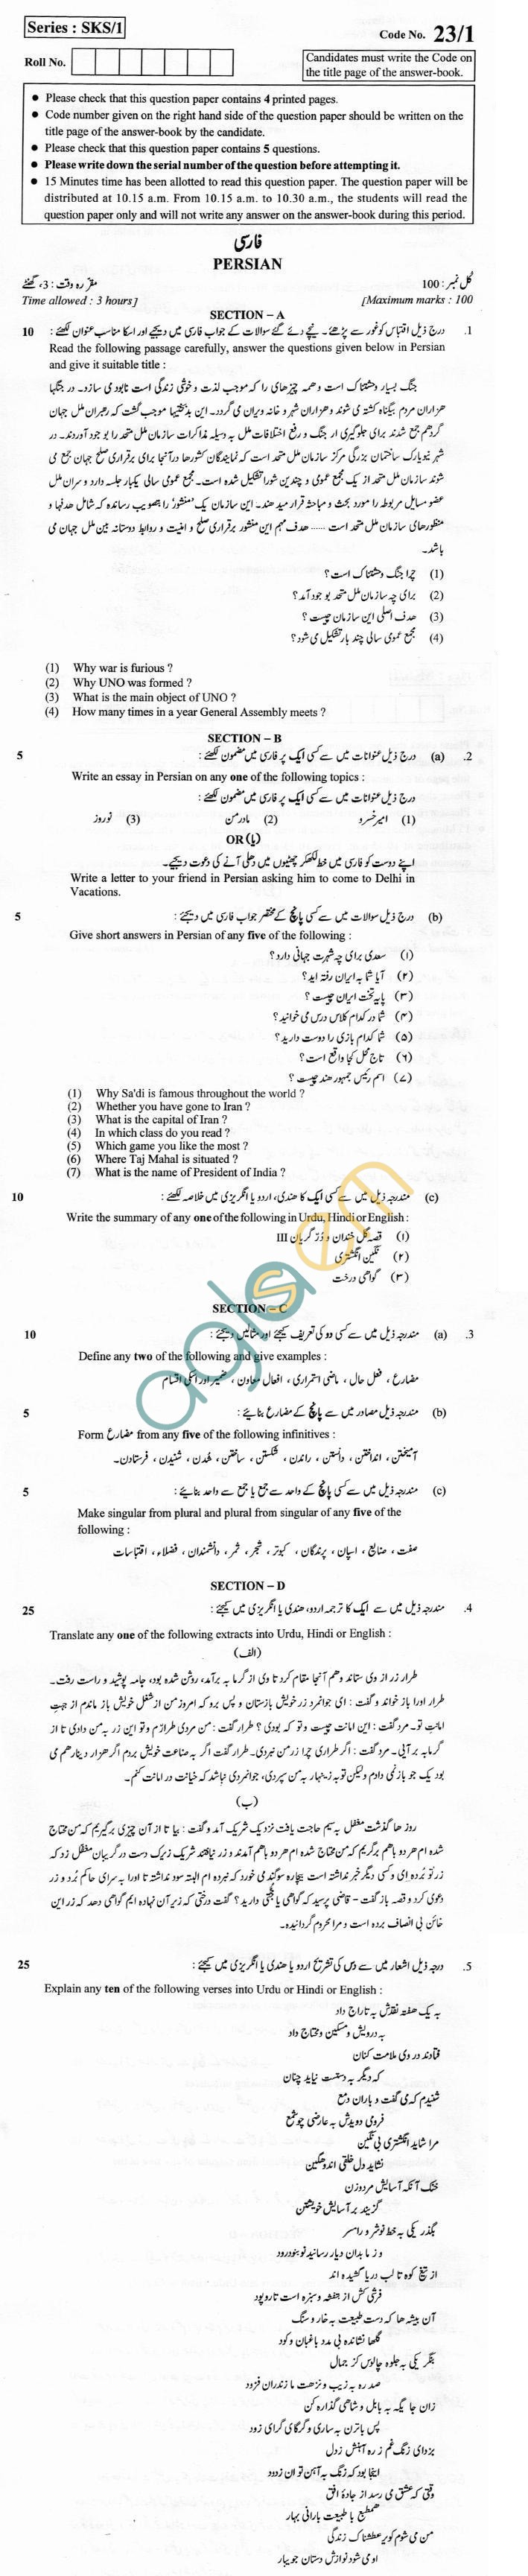 CBSE Board Exam 2013 Class XII Question Paper - Persian